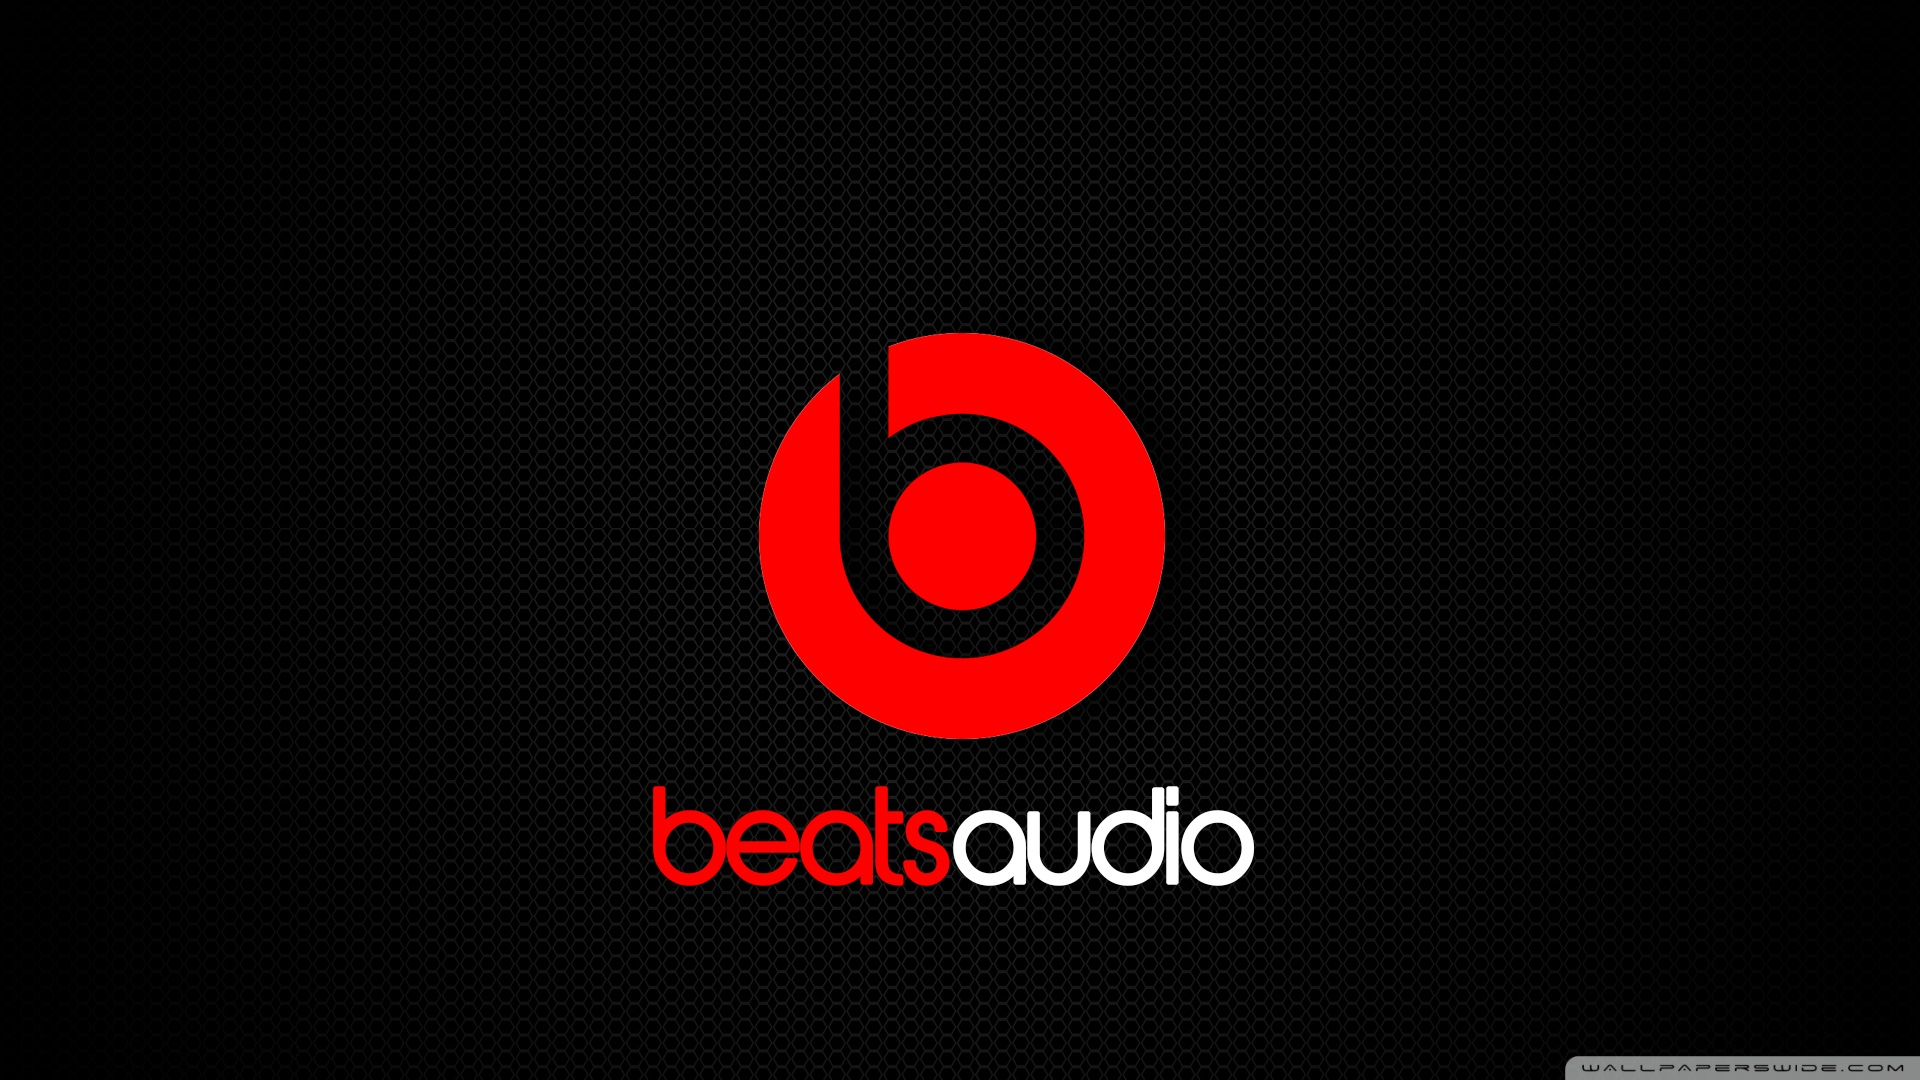 beats audio logo wallpaper